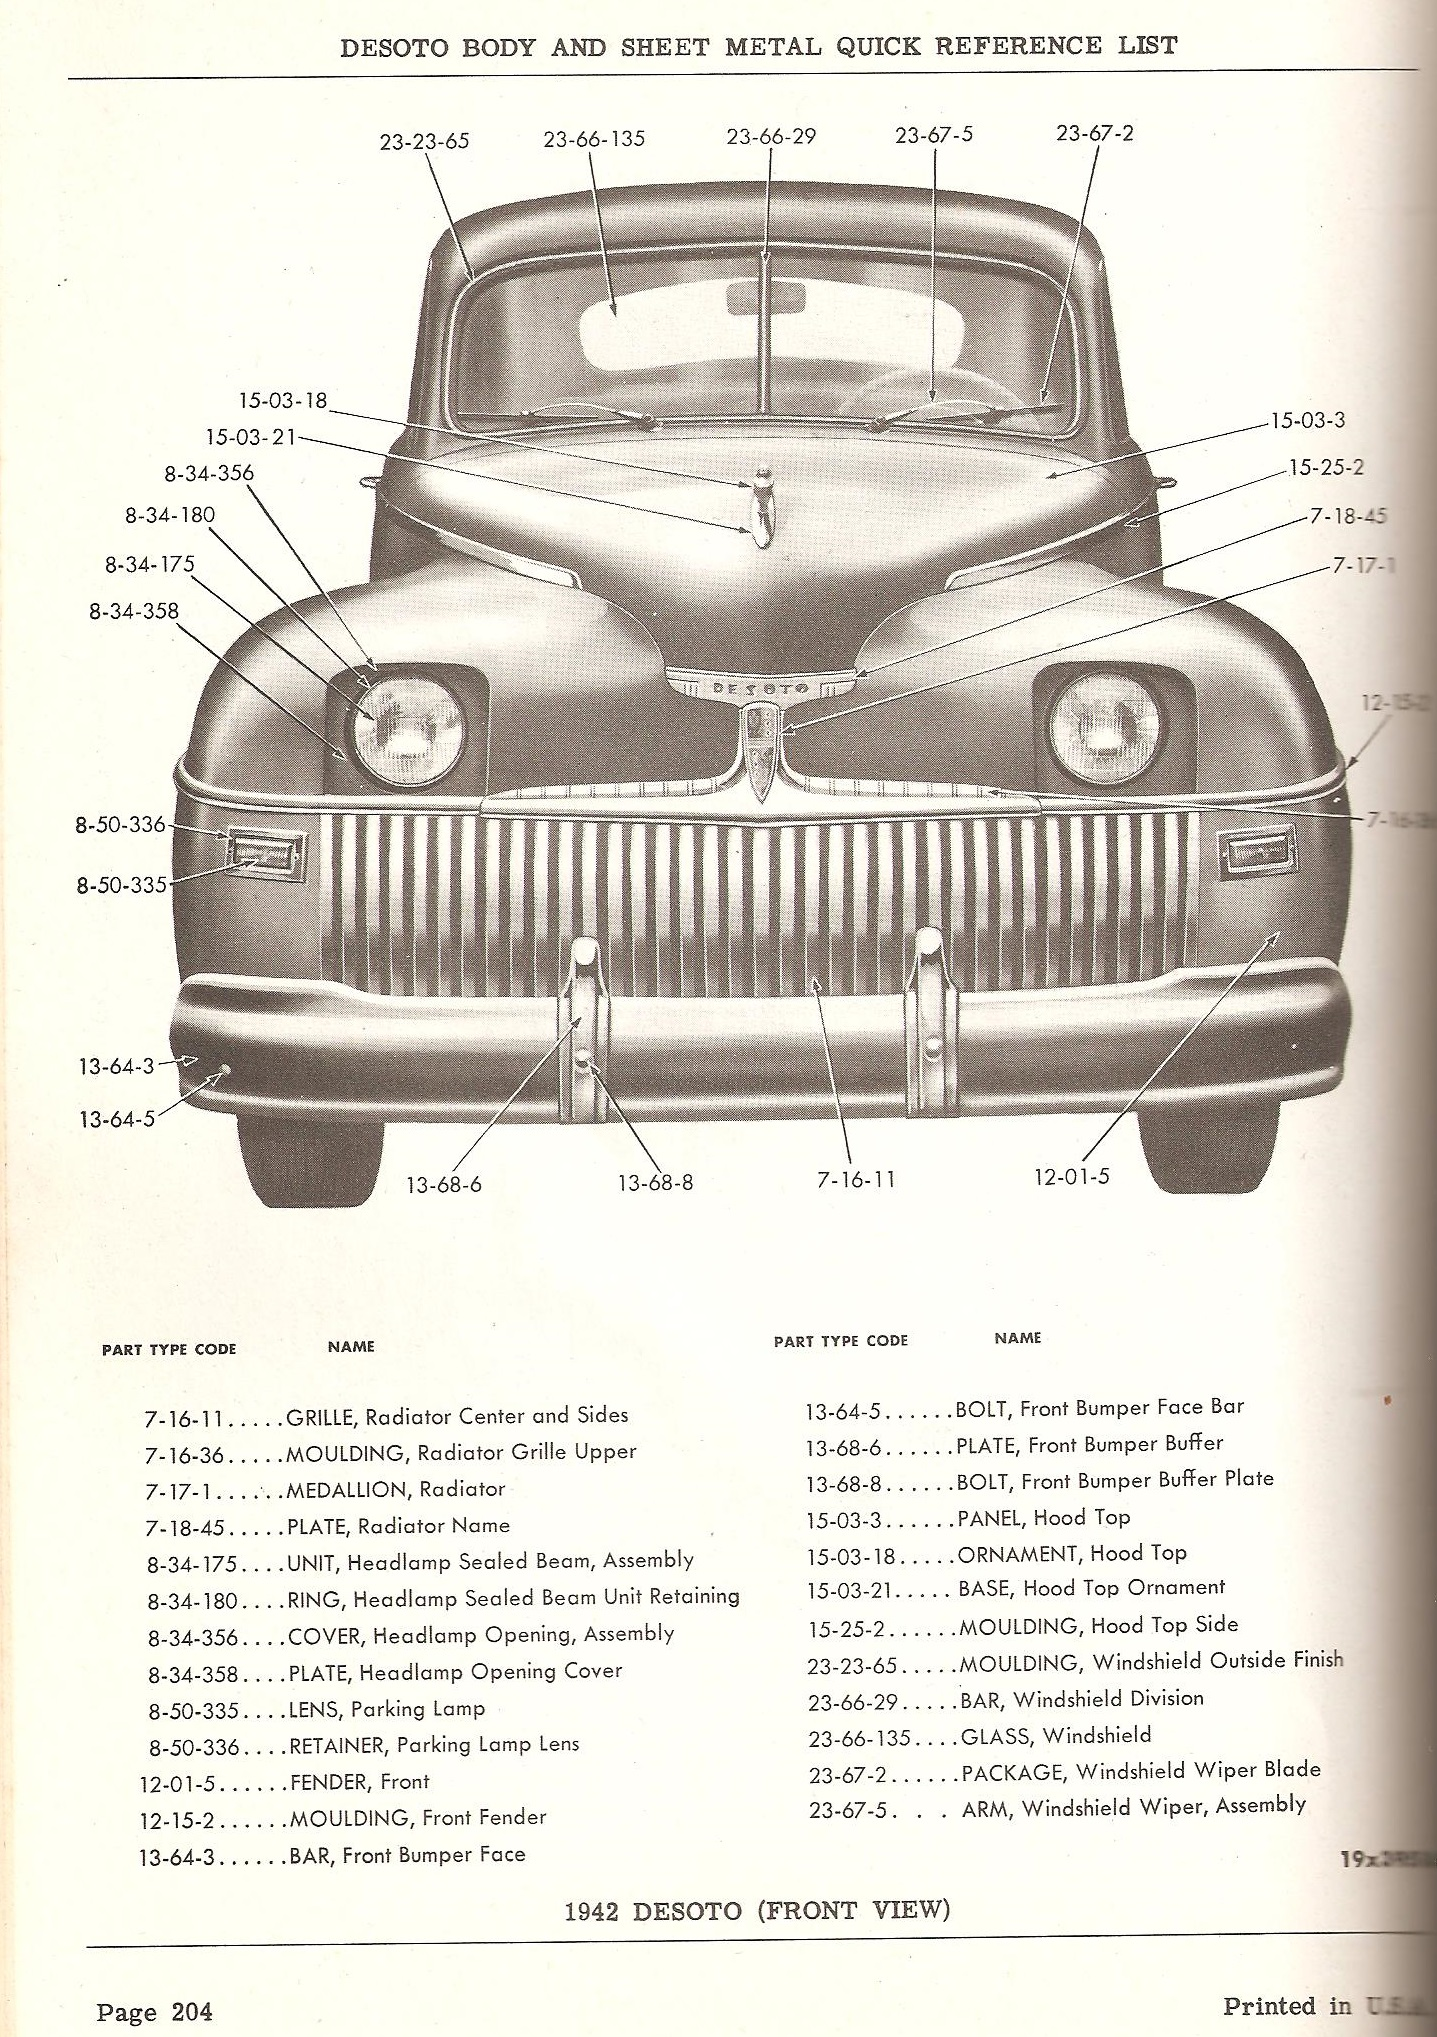 1942 Desoto parts wanted - Chrysler Products - Buy/Sell - Antique ...